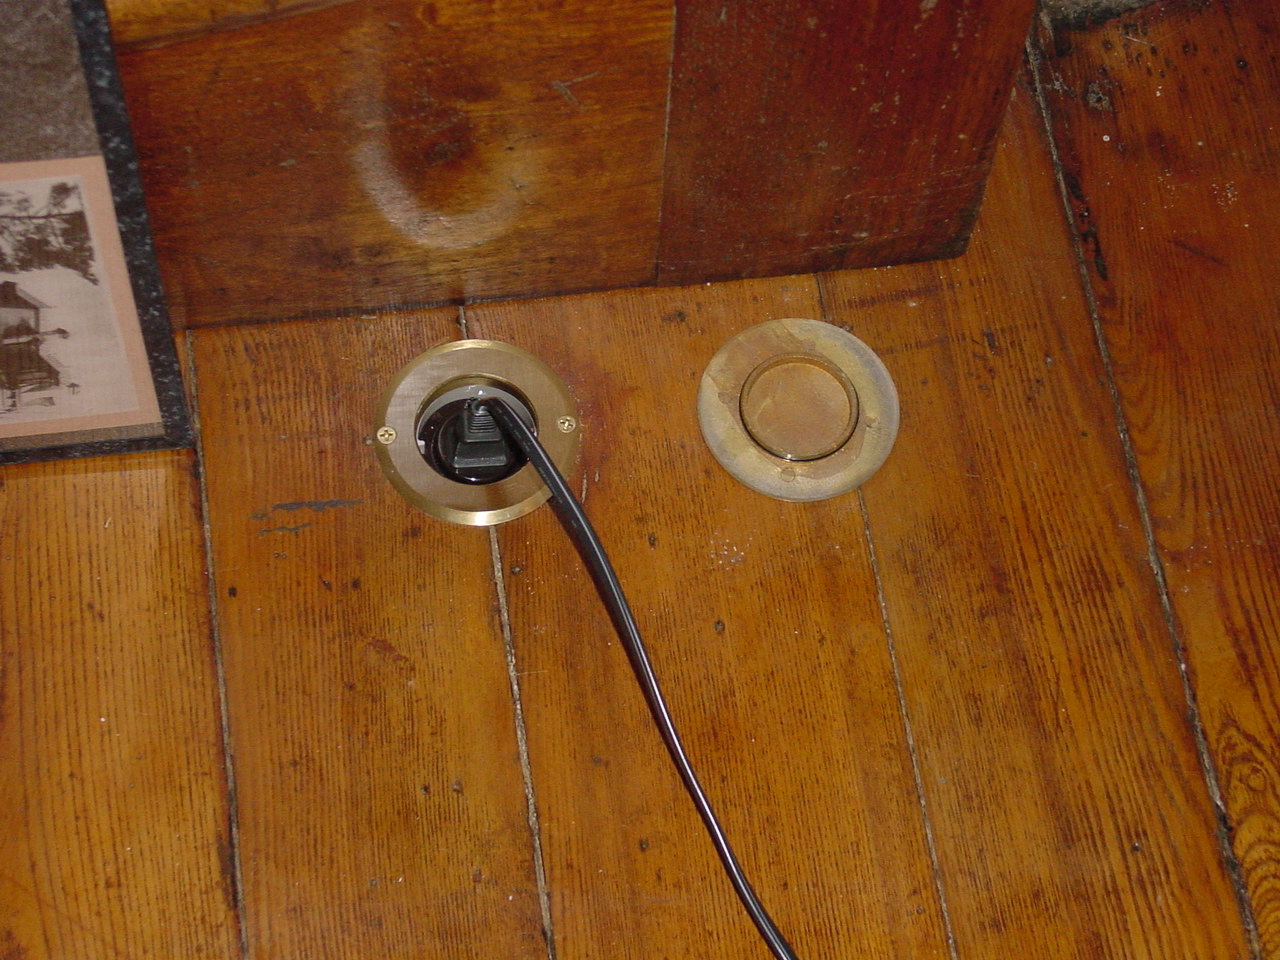 It Was Easier And More Practical To Install These Than Attempt Cut A Piece Of Wood Plug The Holes